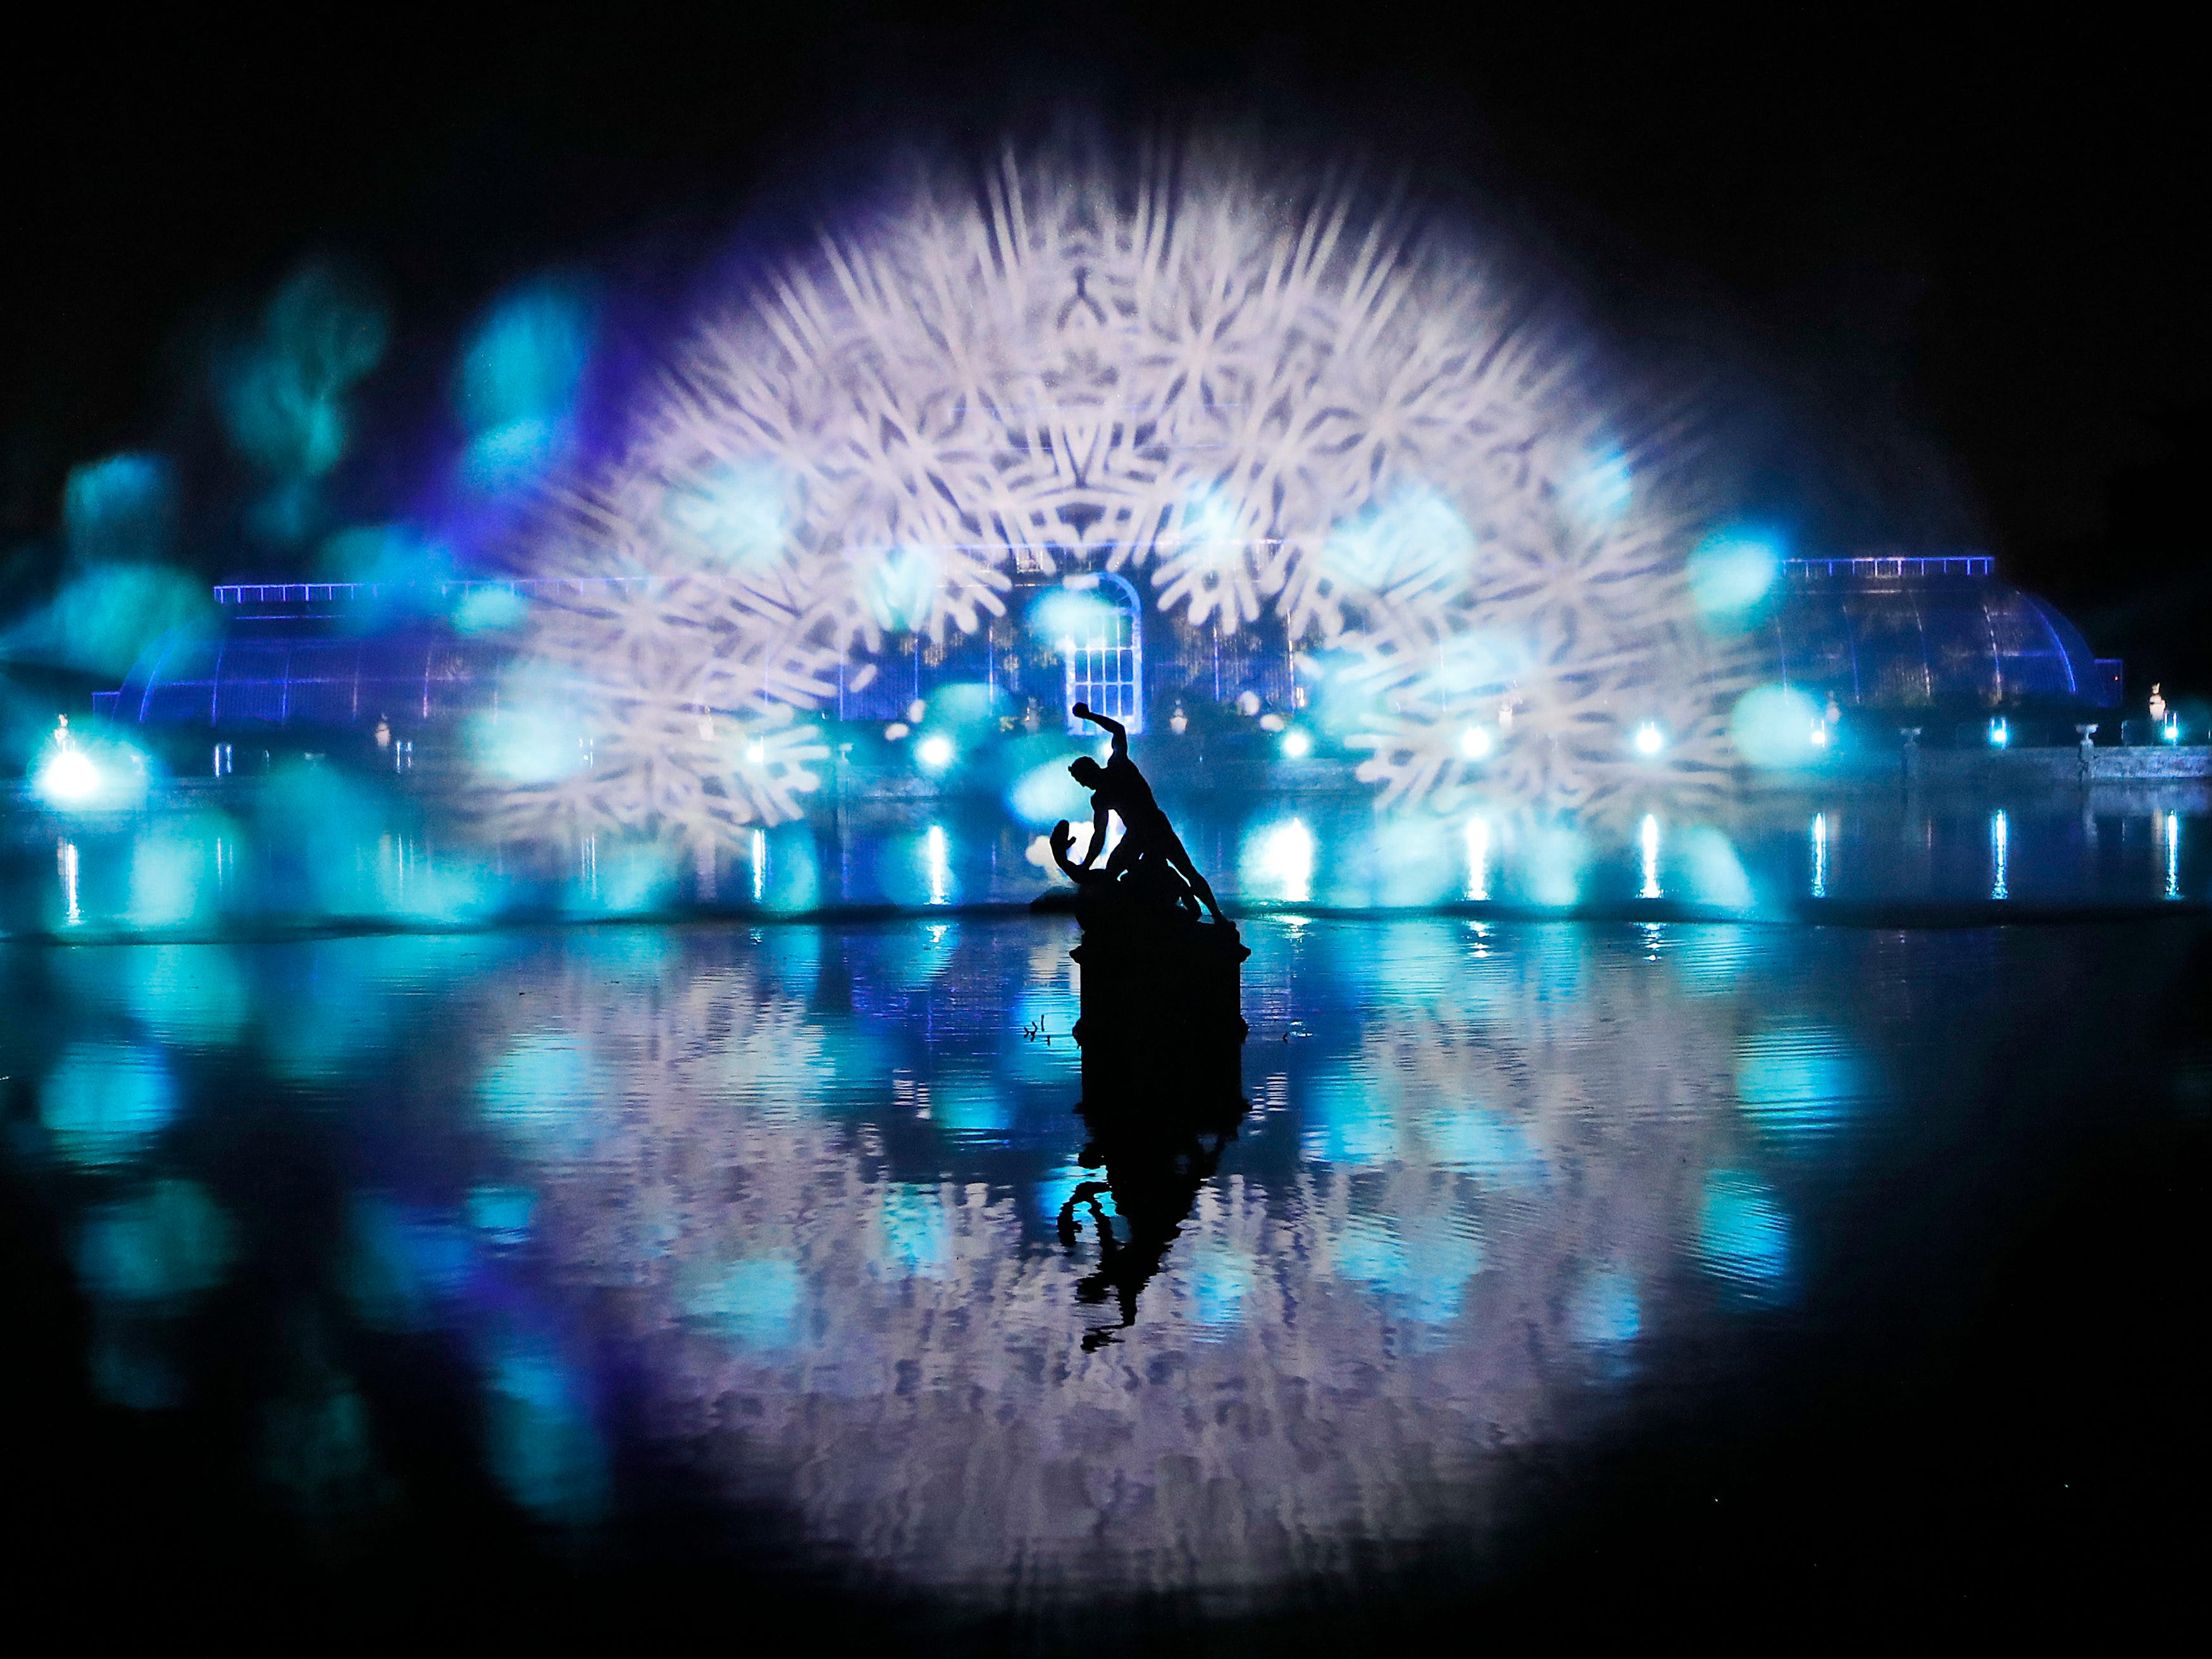 A Grand Finale illuminates the Palm House by laser light as part of the illuminated trail through Kew Gardens magnificent after-dark landscape, lit up by over one million twinkling lights in London, Wednesday, Nov. 21, 2018.